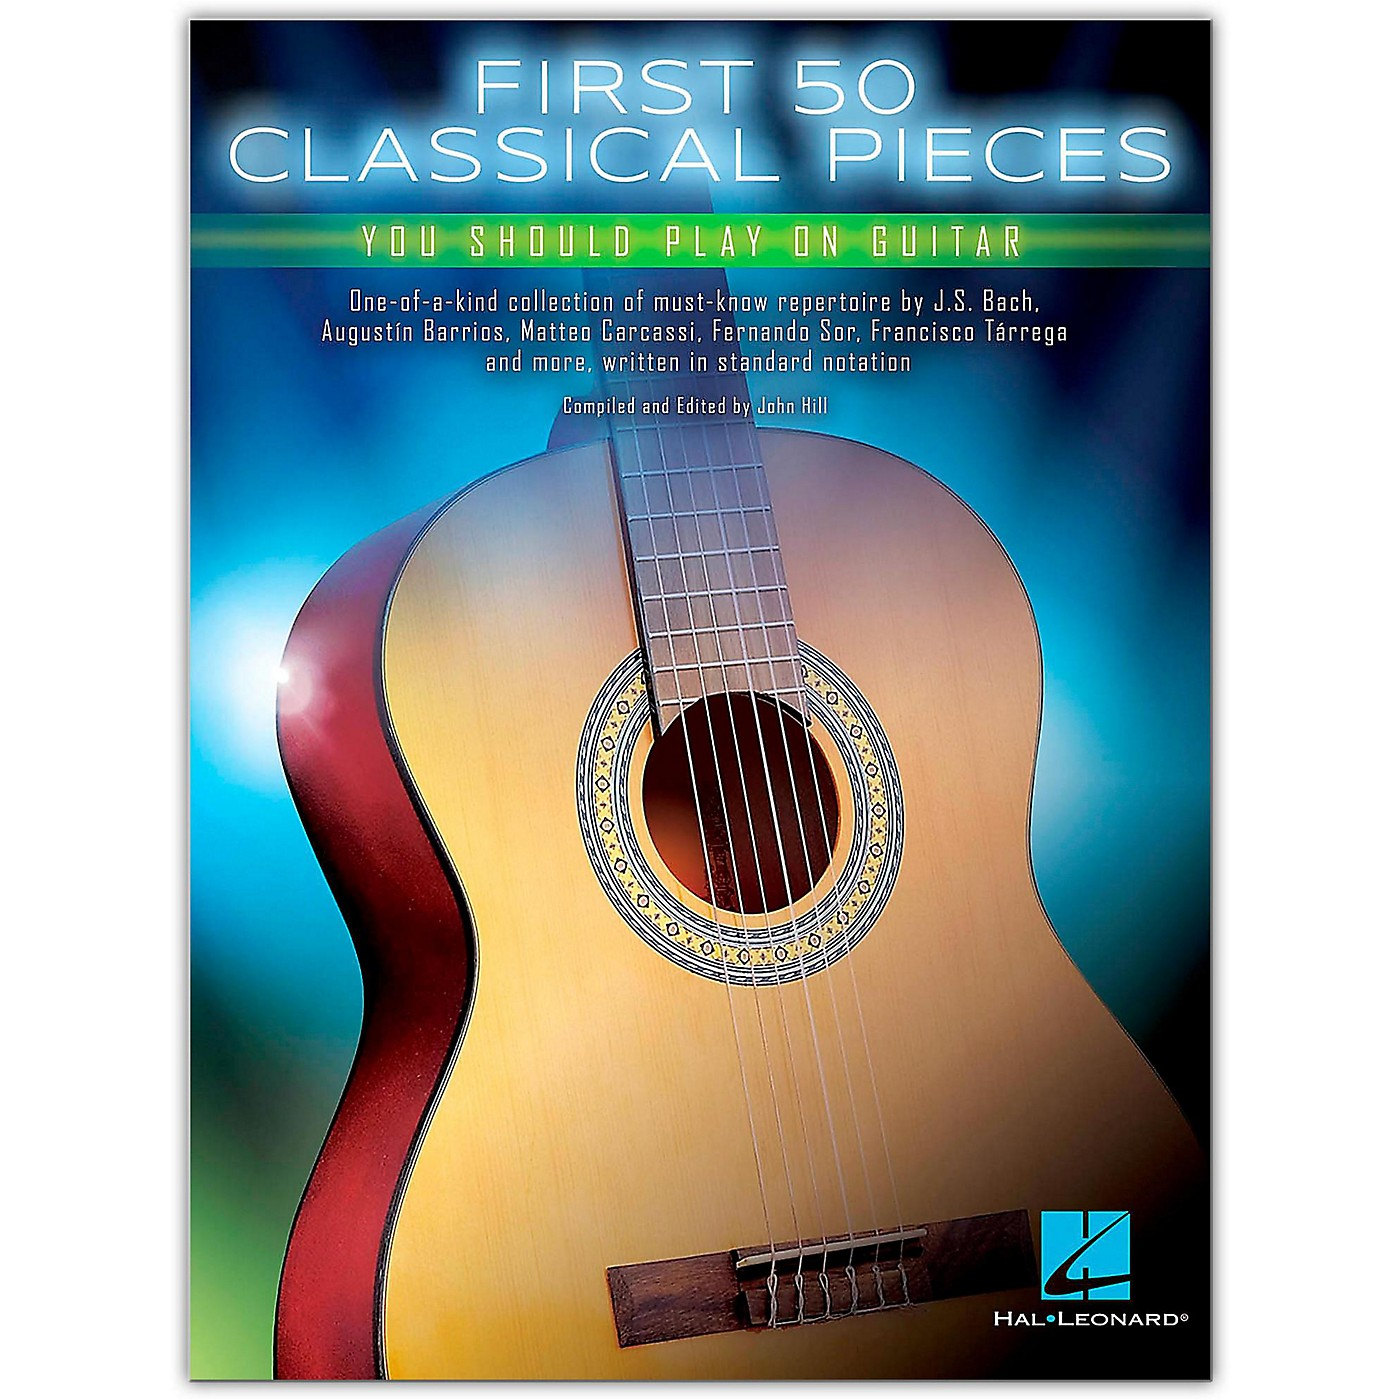 Hal Leonard First 50 Classical Pieces You Should Play on Guitar thumbnail